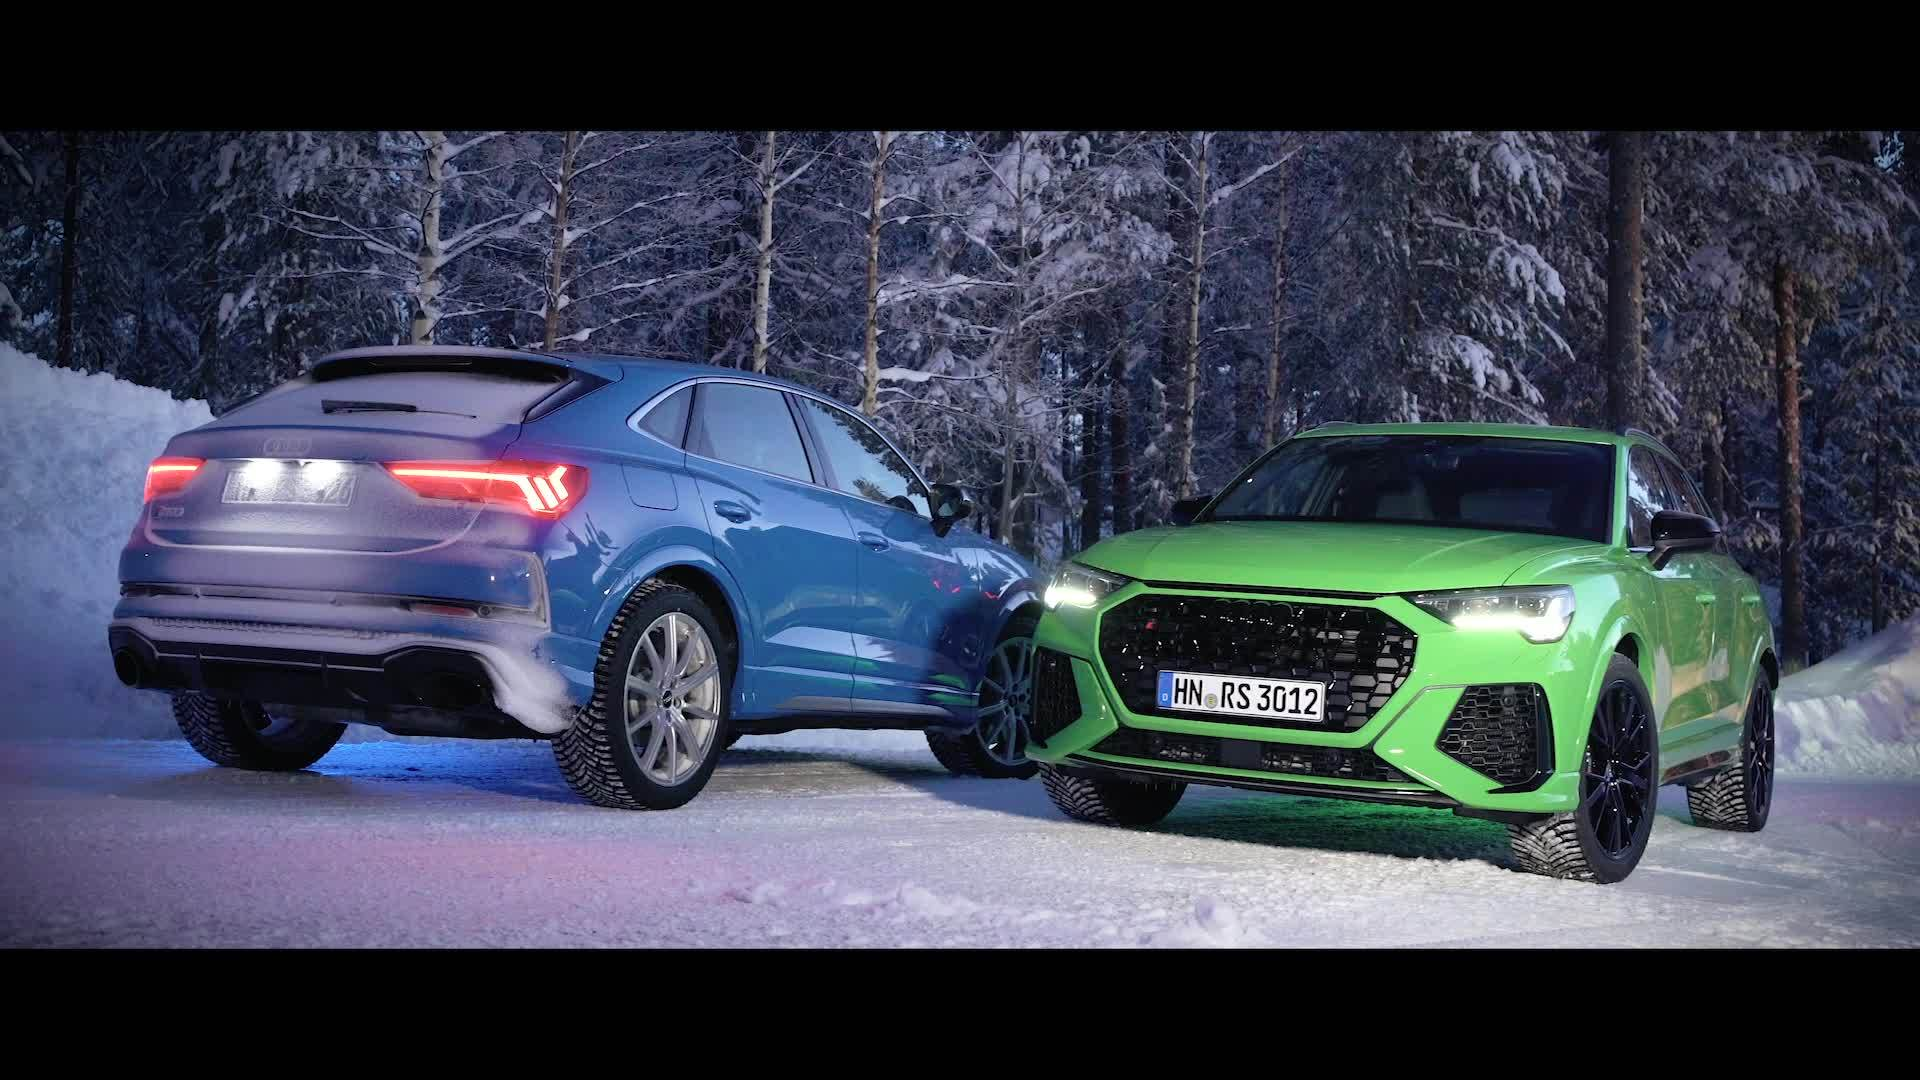 Audi RS Q3 und Audi RS Q3 Sportback on location